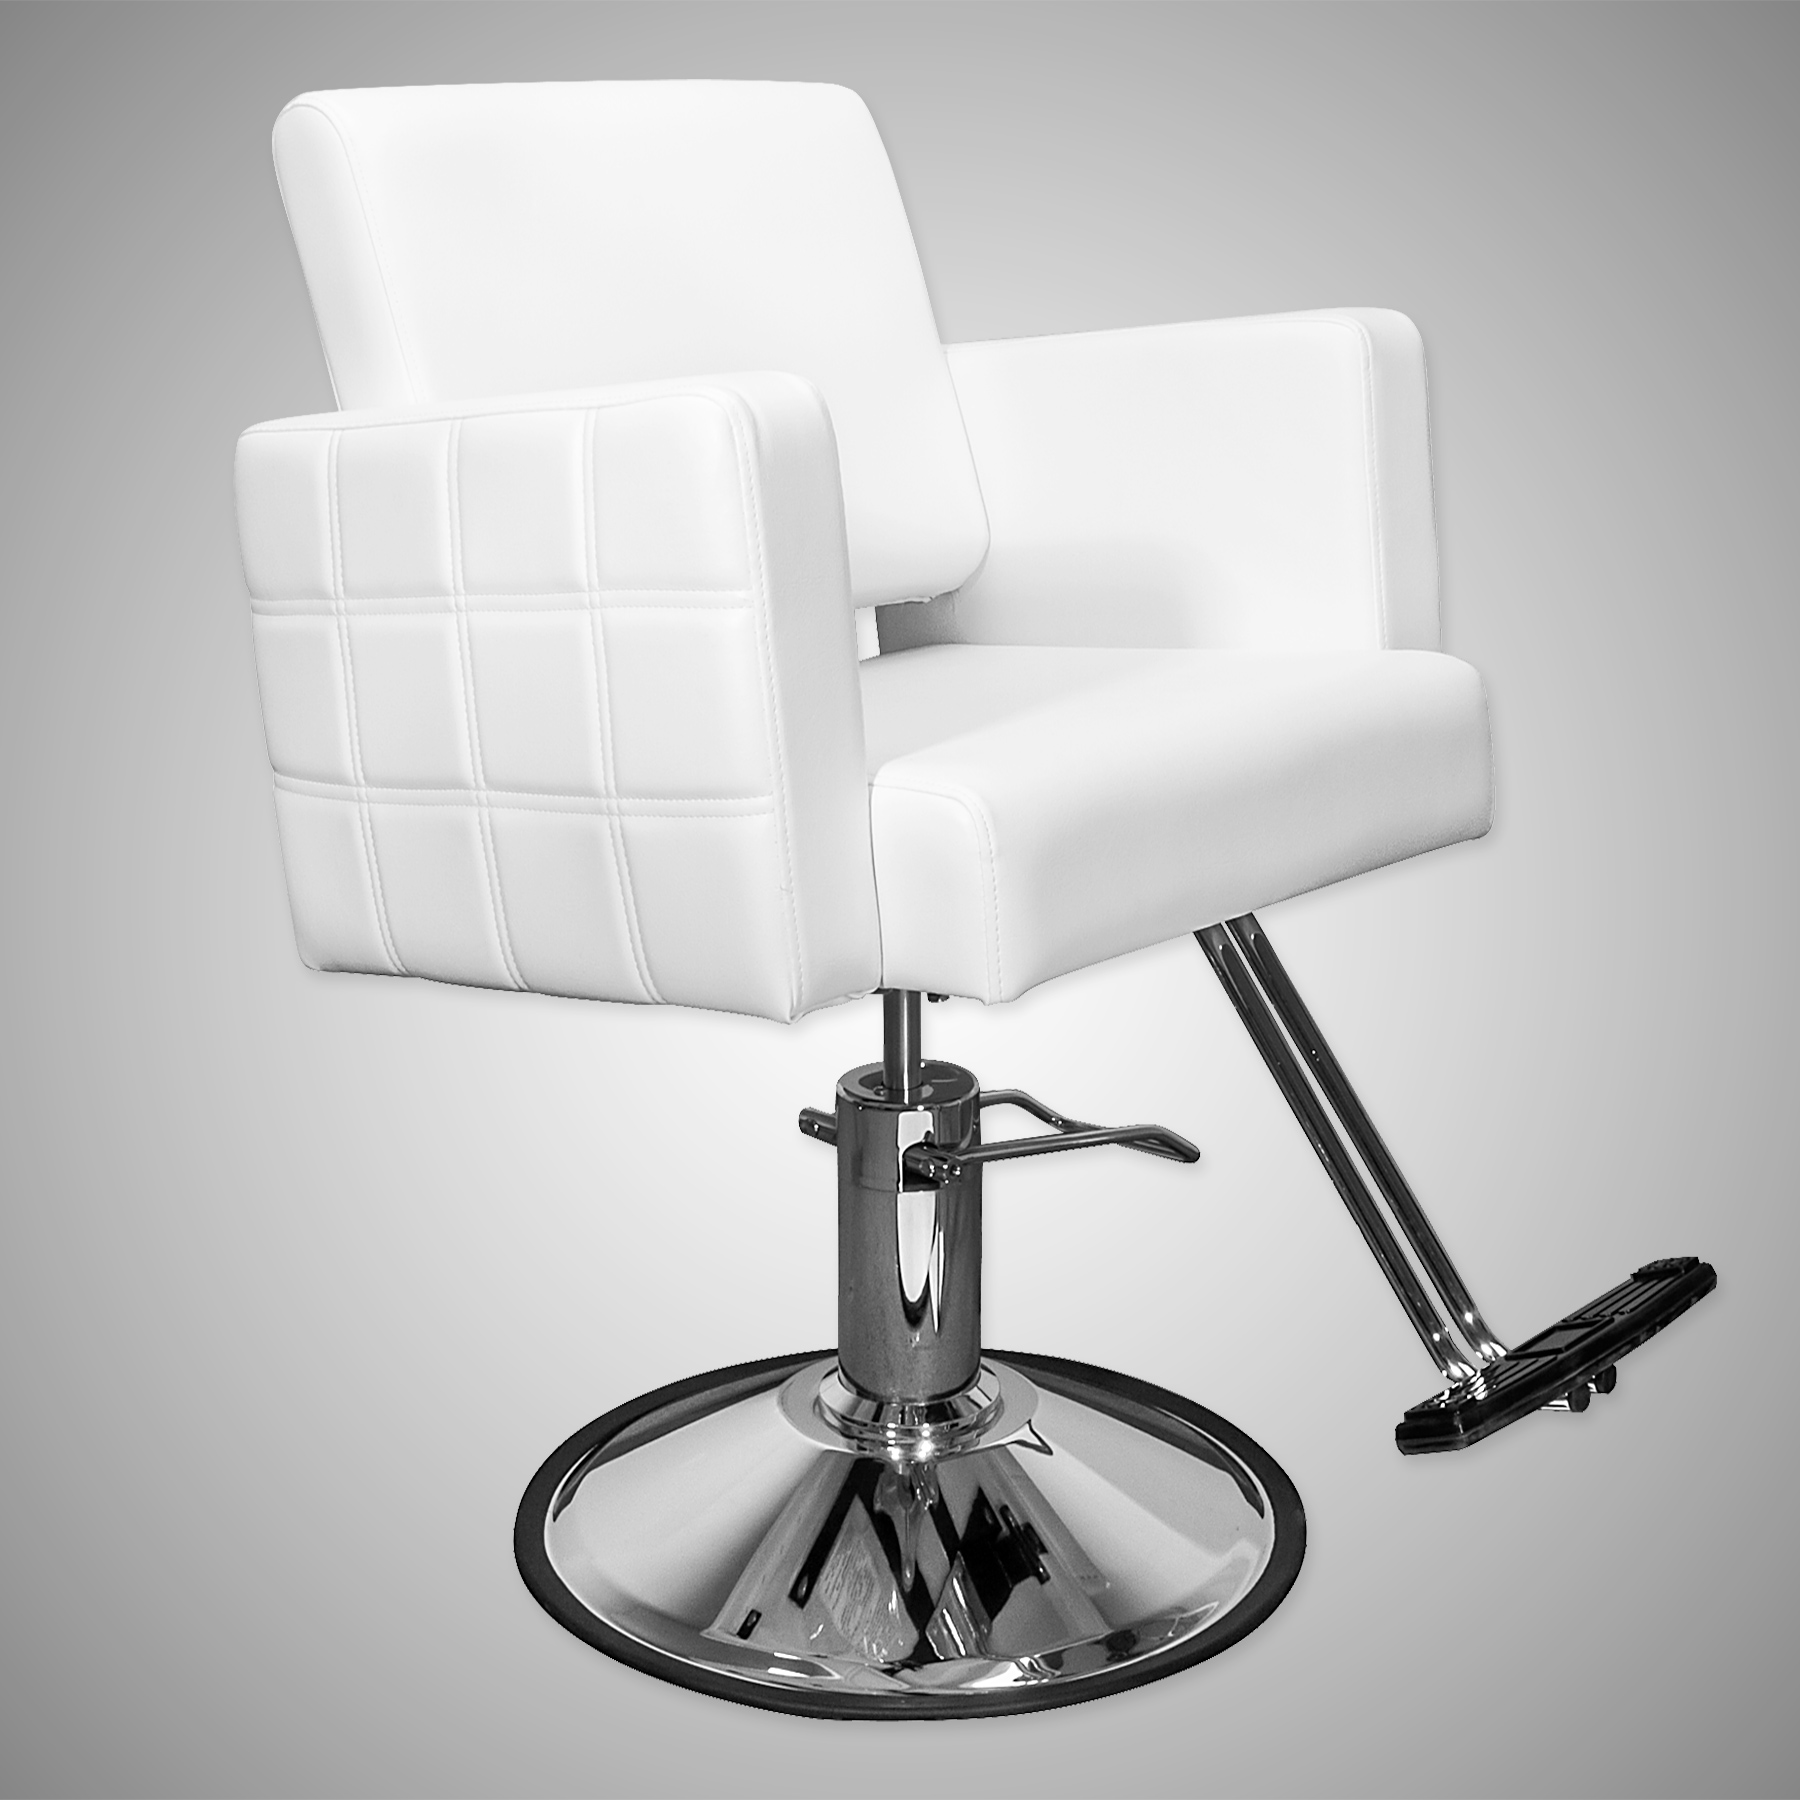 Havana Stylist Chair Quilted White alternative product image 5